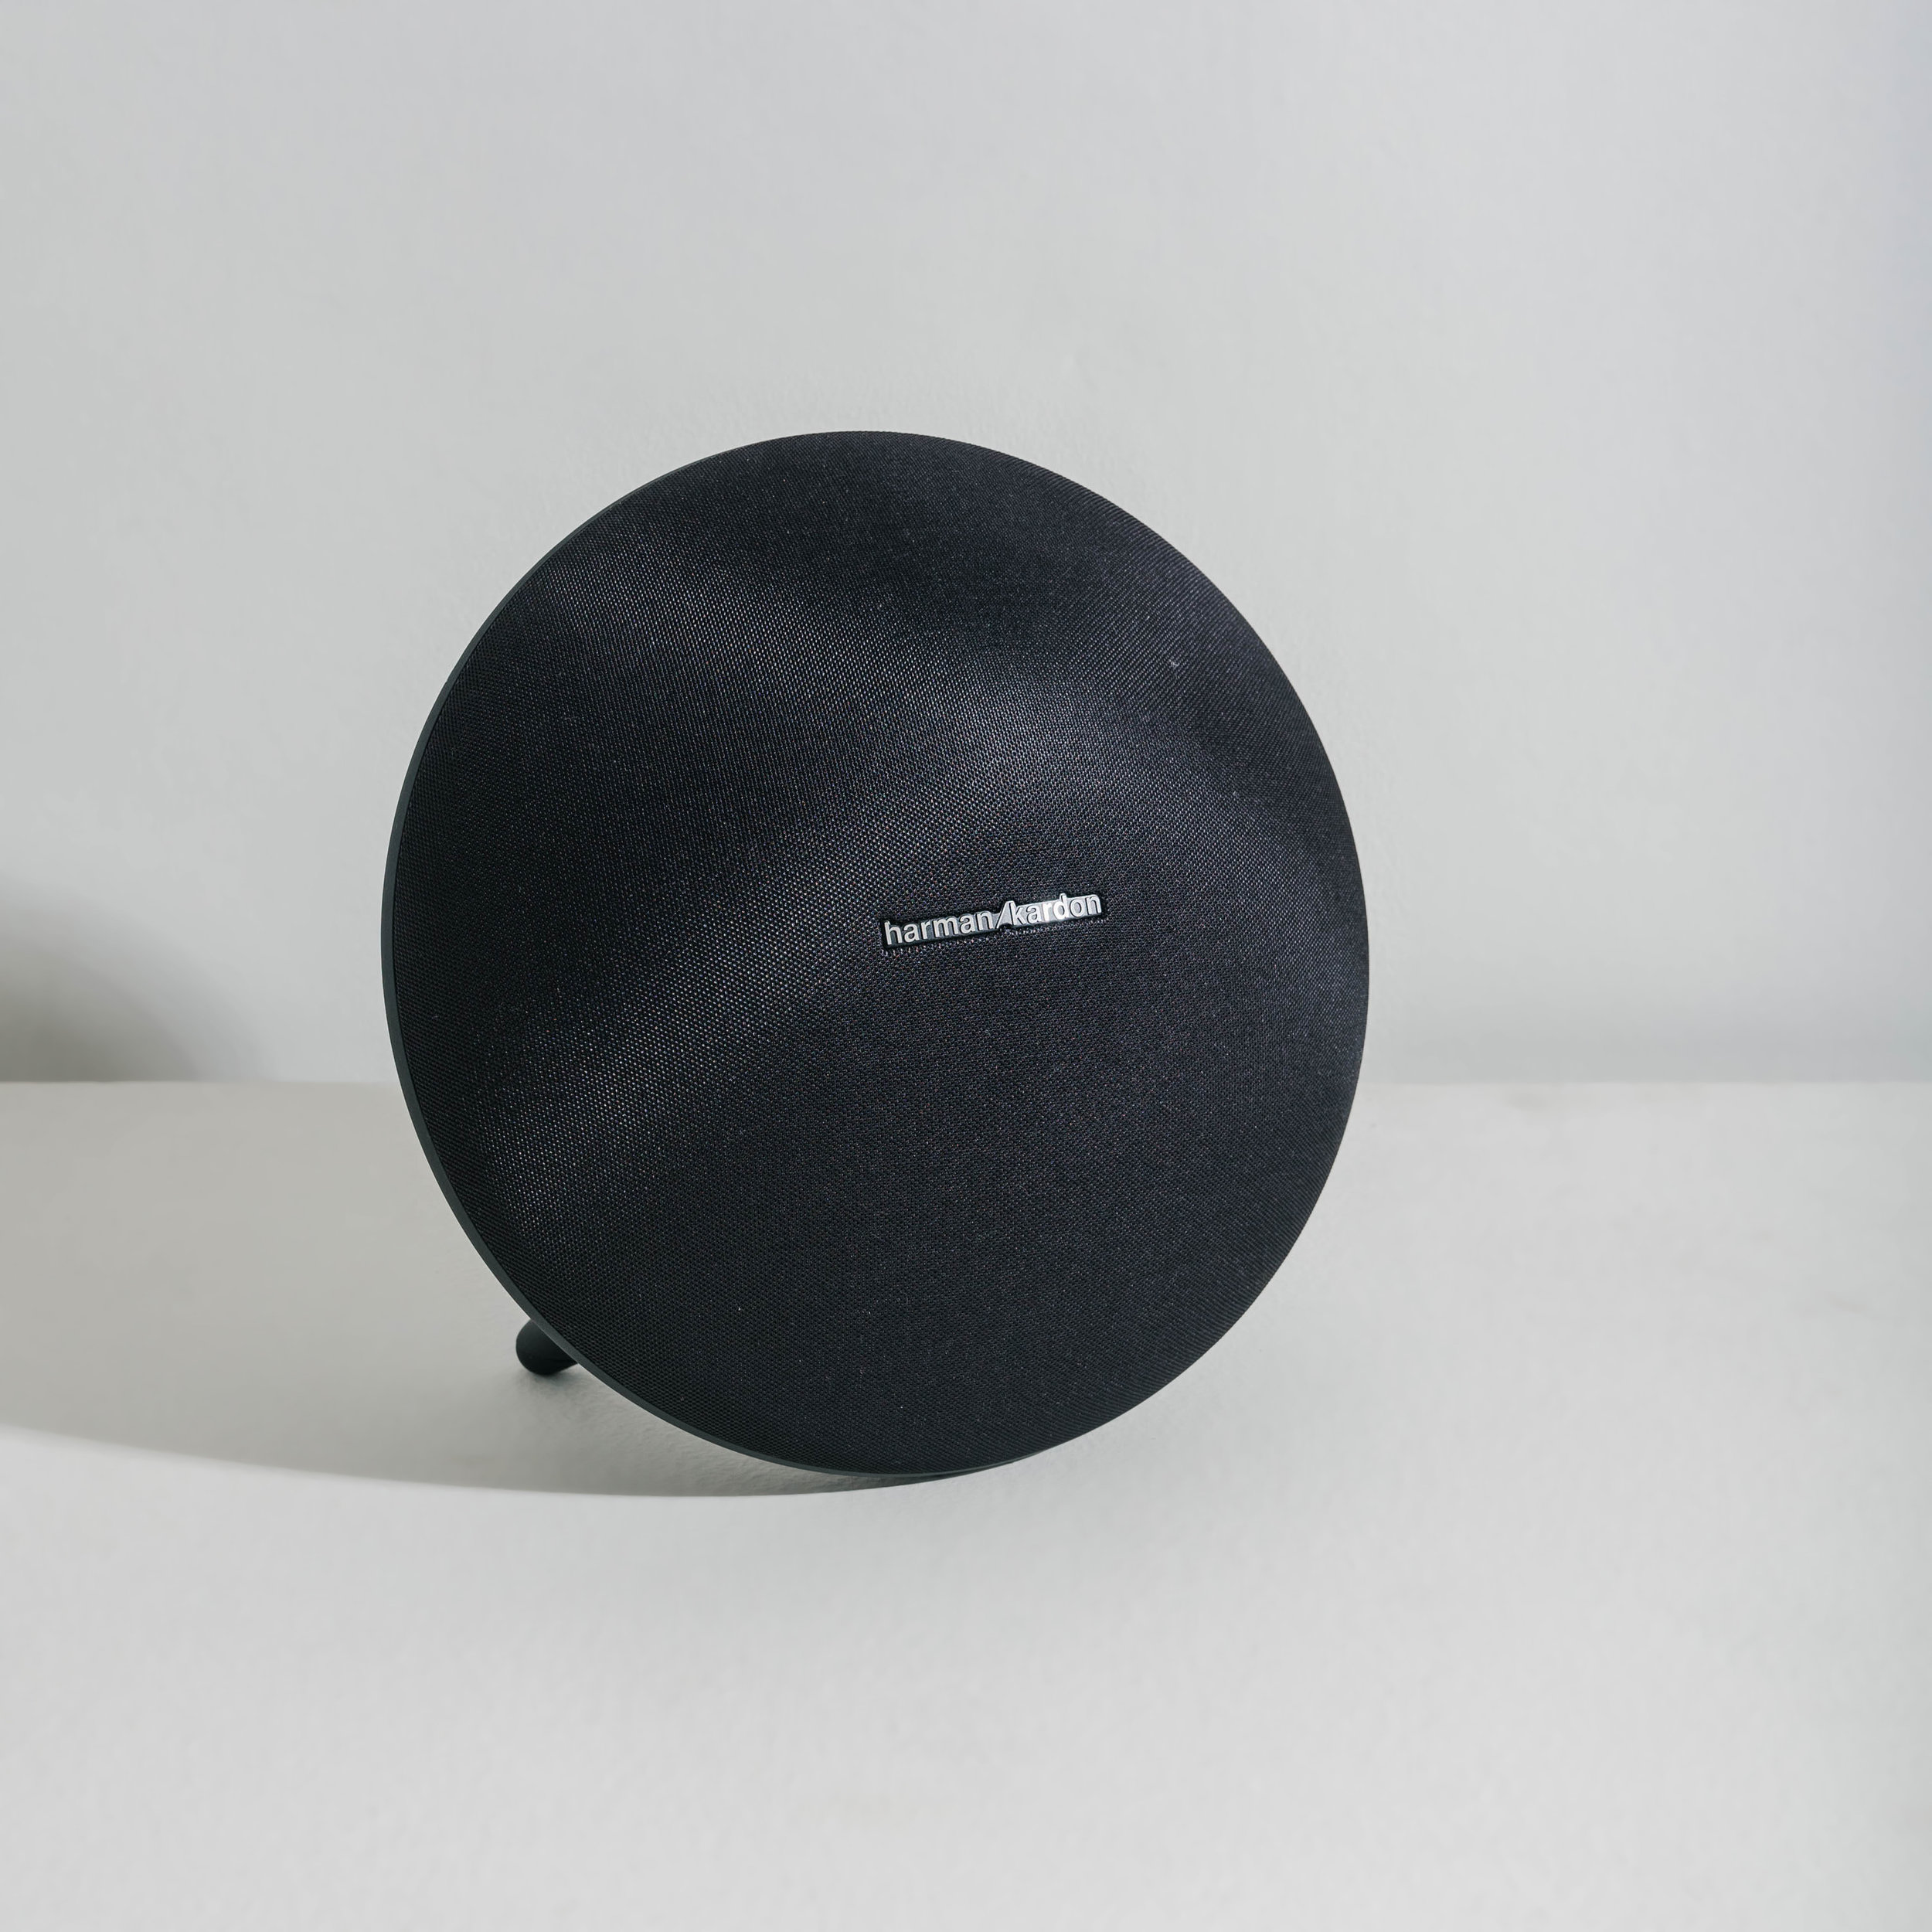 23. HARMAN KARDON Onyx Studio 4